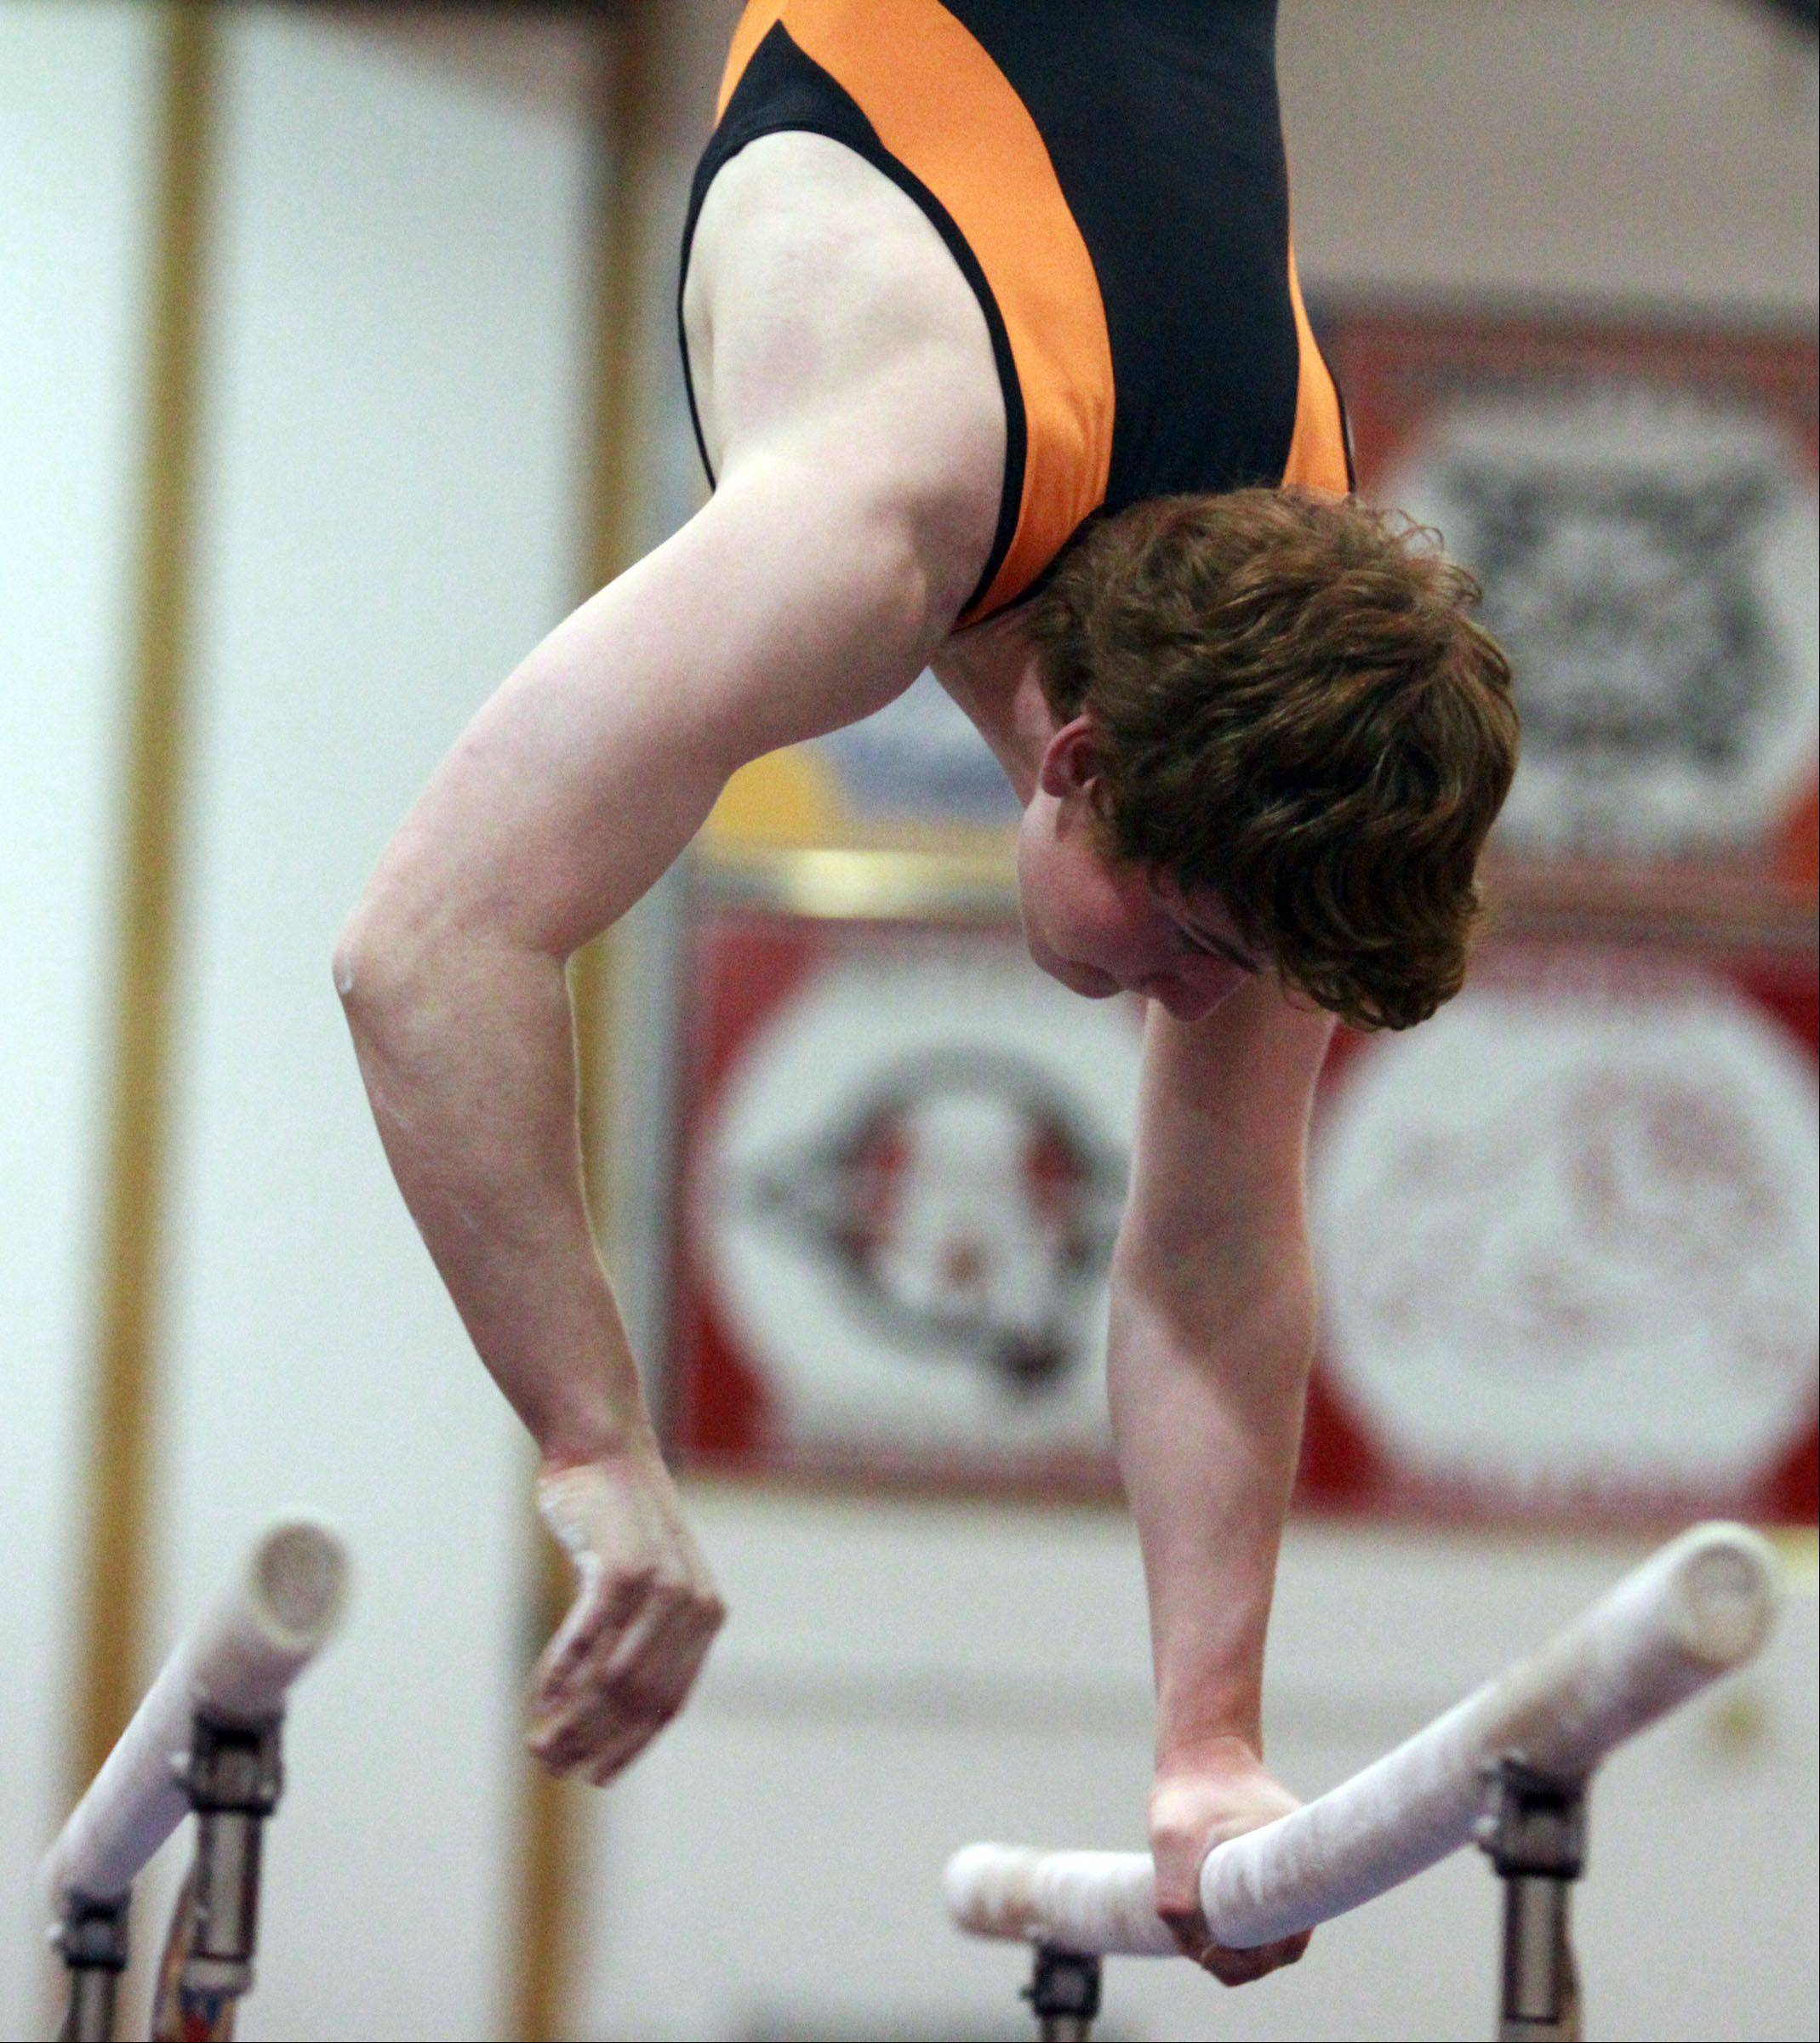 Libertyville's Ben Reichert competes on the parallel bars at the Mundelein boys gymnastics sectional on Saturday.